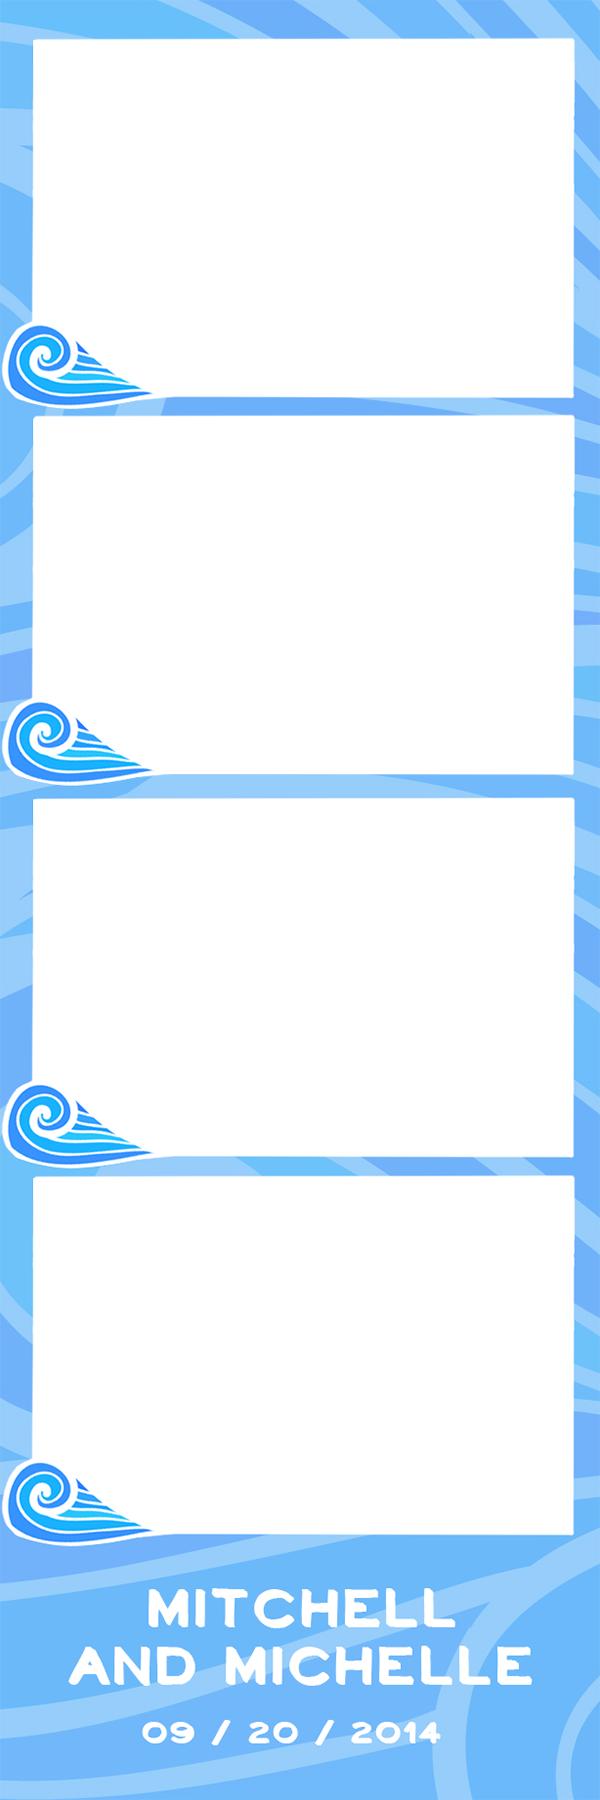 013B_LightBlue_4UP_D1.png